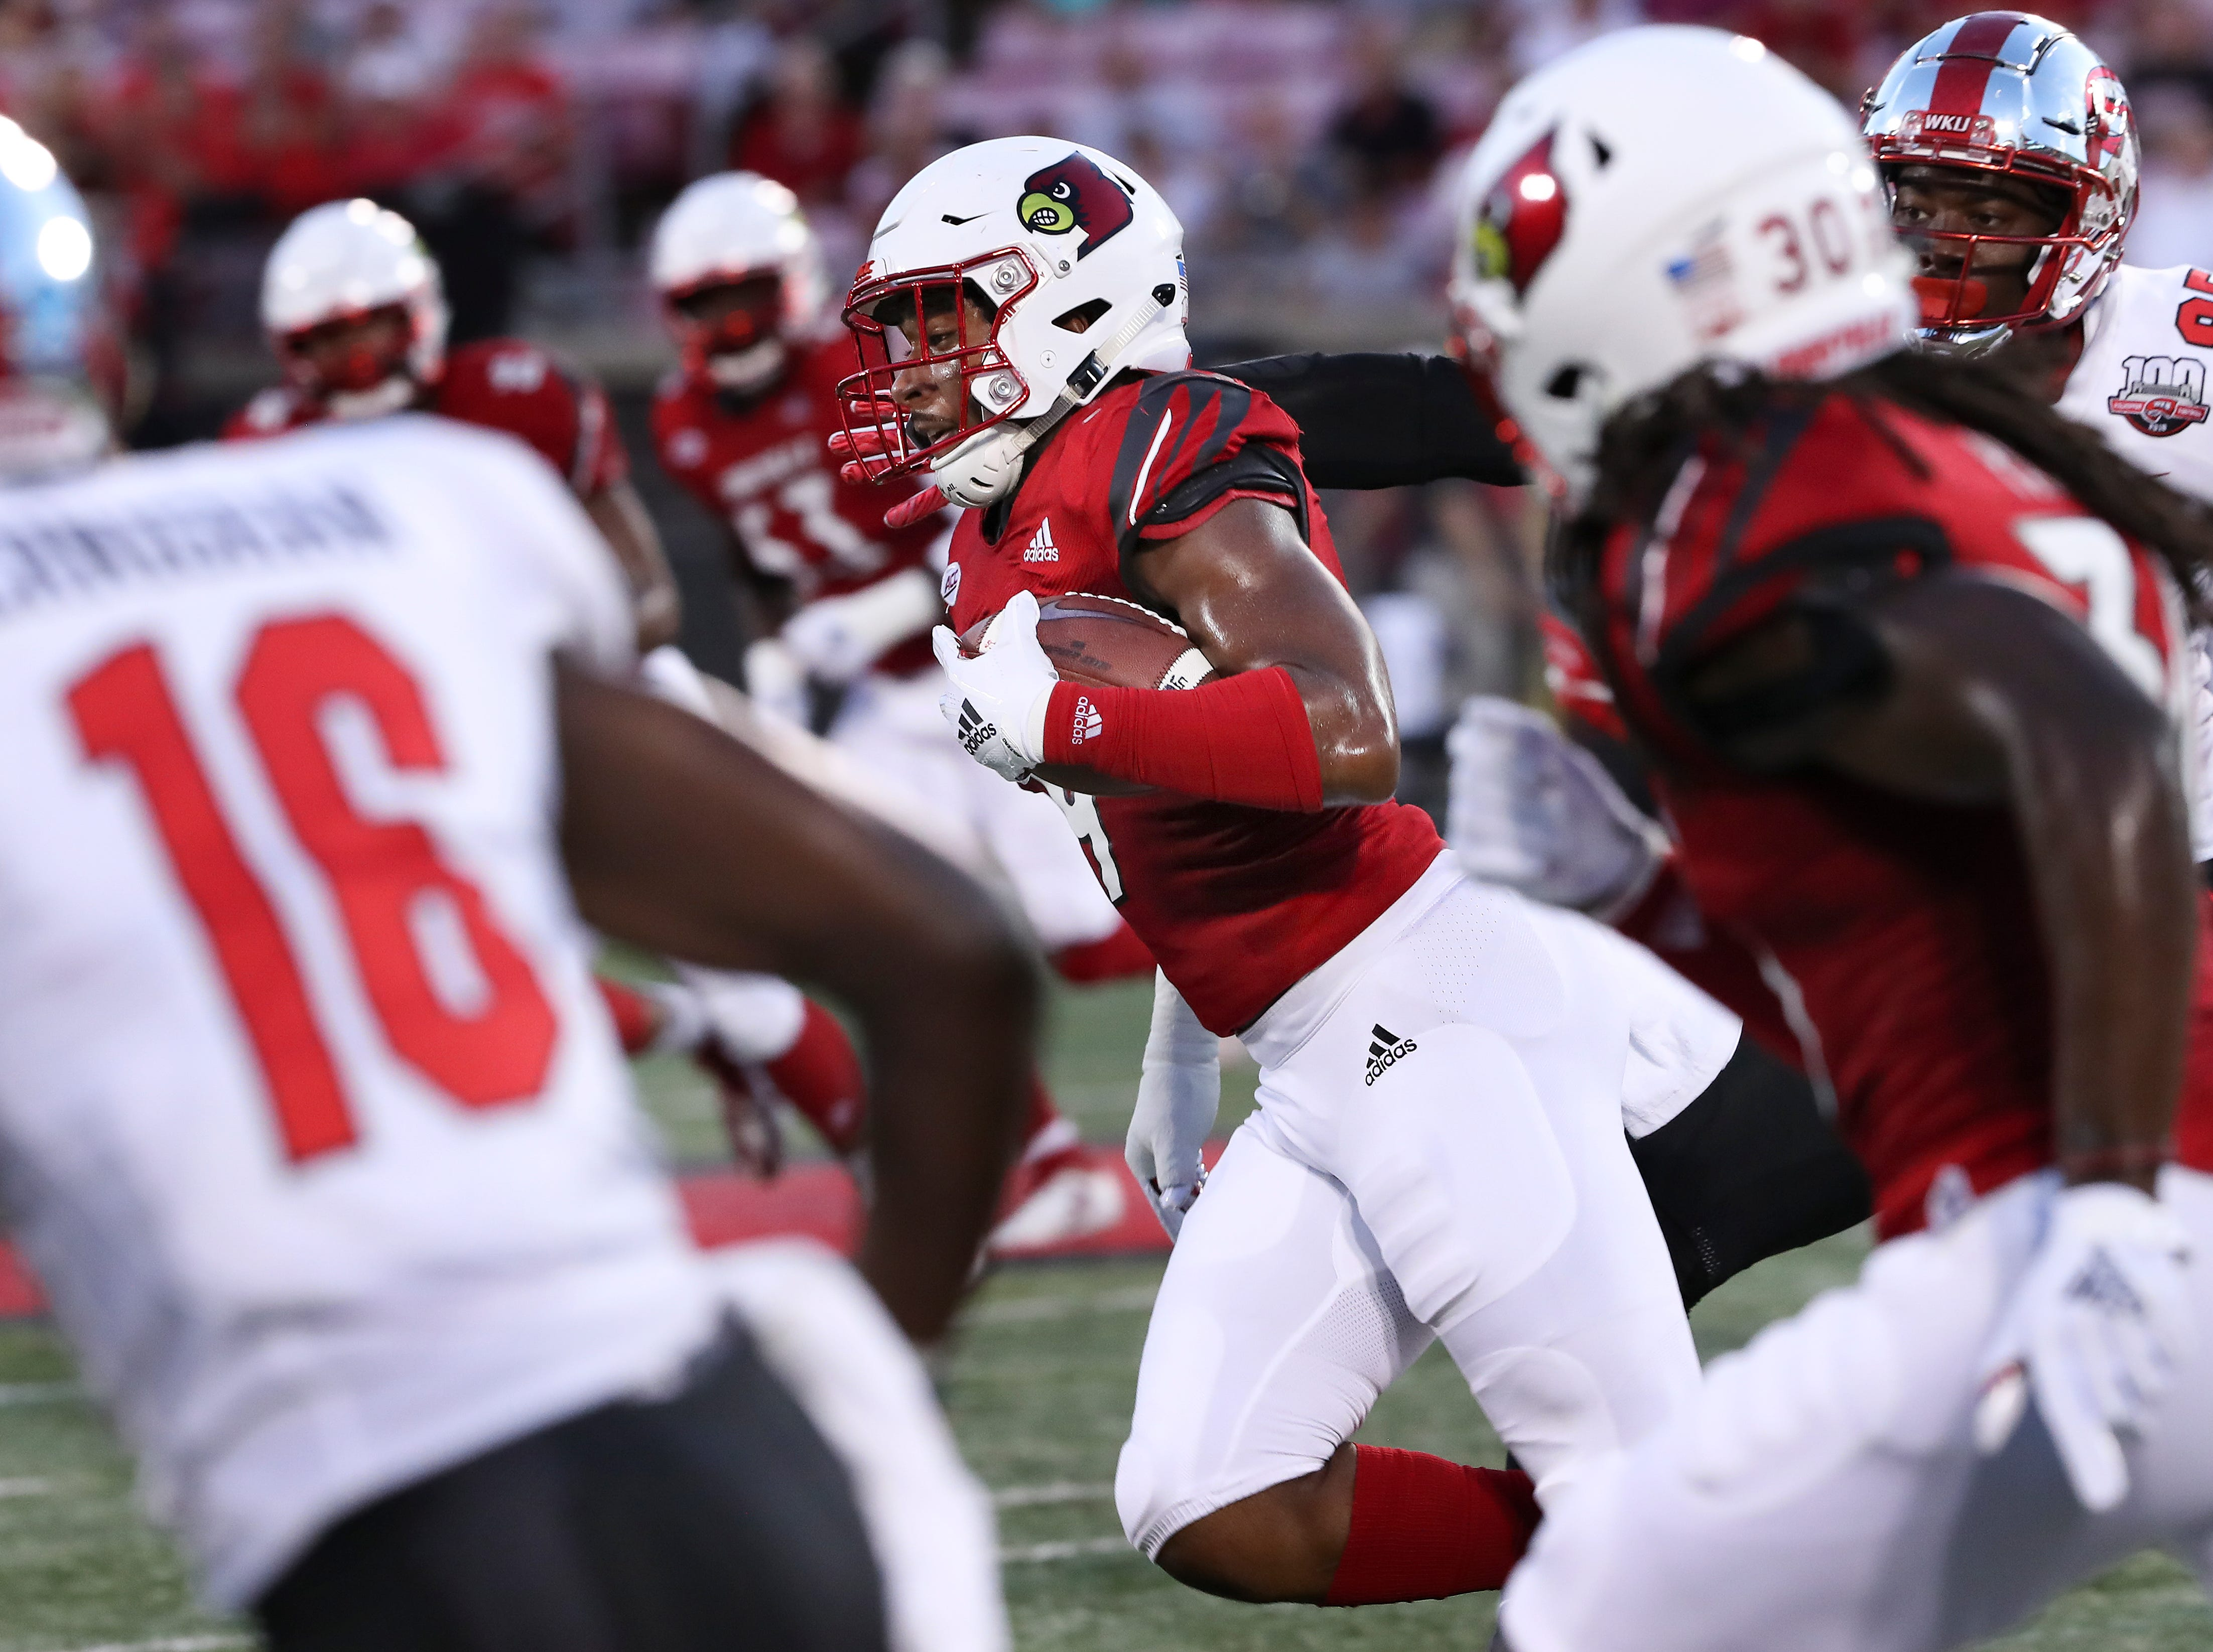 Louisville's C.J. Avery (9) runs back an intercepted WKU pass to give U of L possession during their game at Cardinal Stadium.